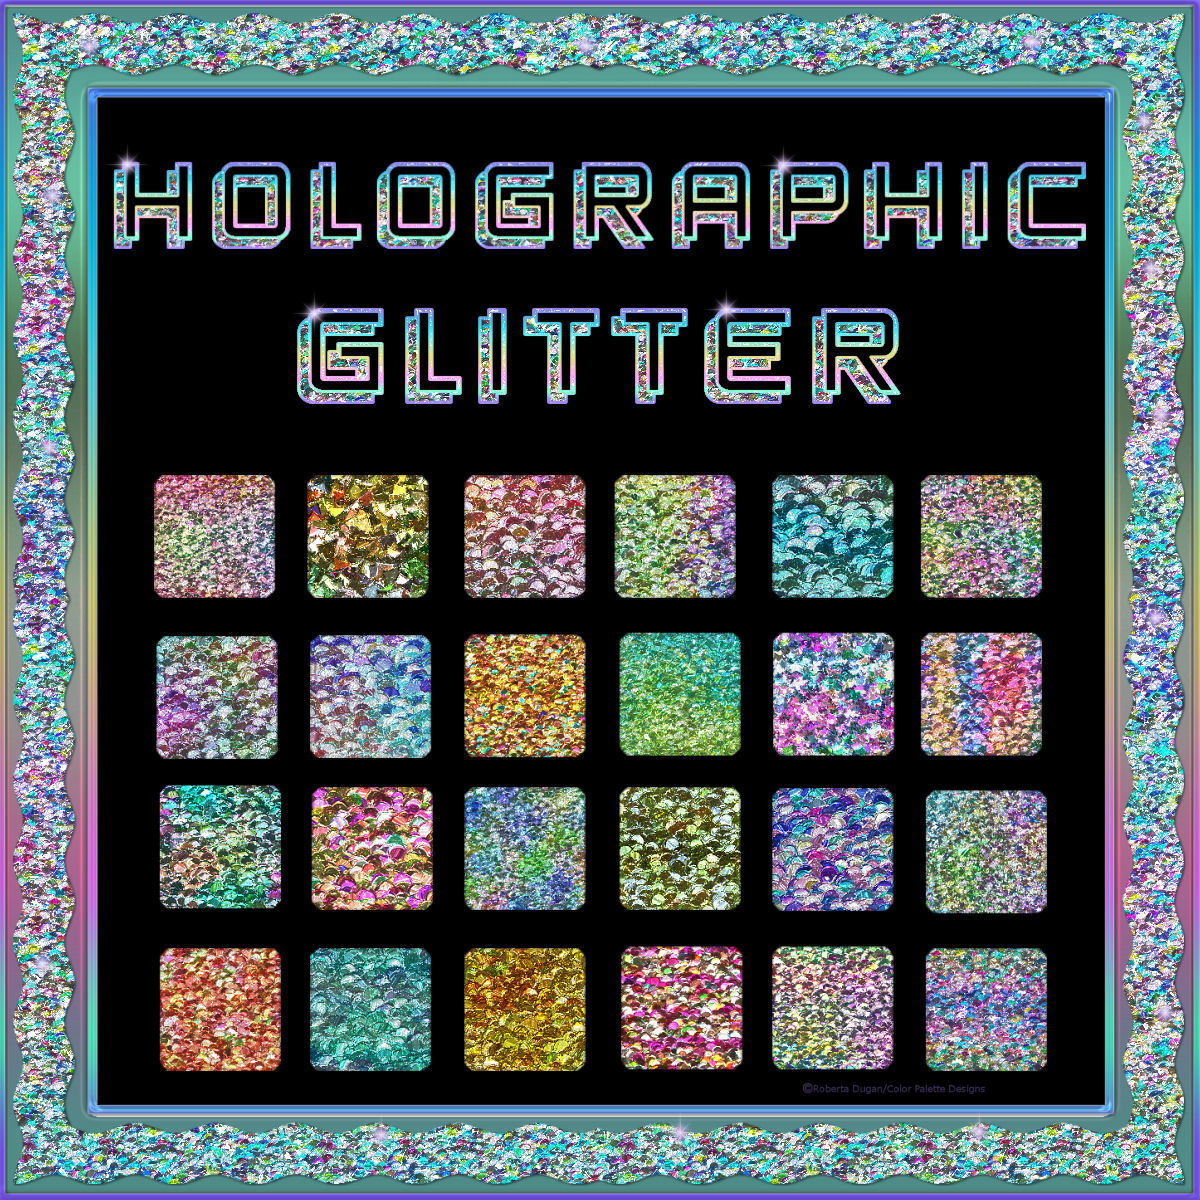 Bling Glamour Glitter HOLOGRAPHIC PS Layer Styles